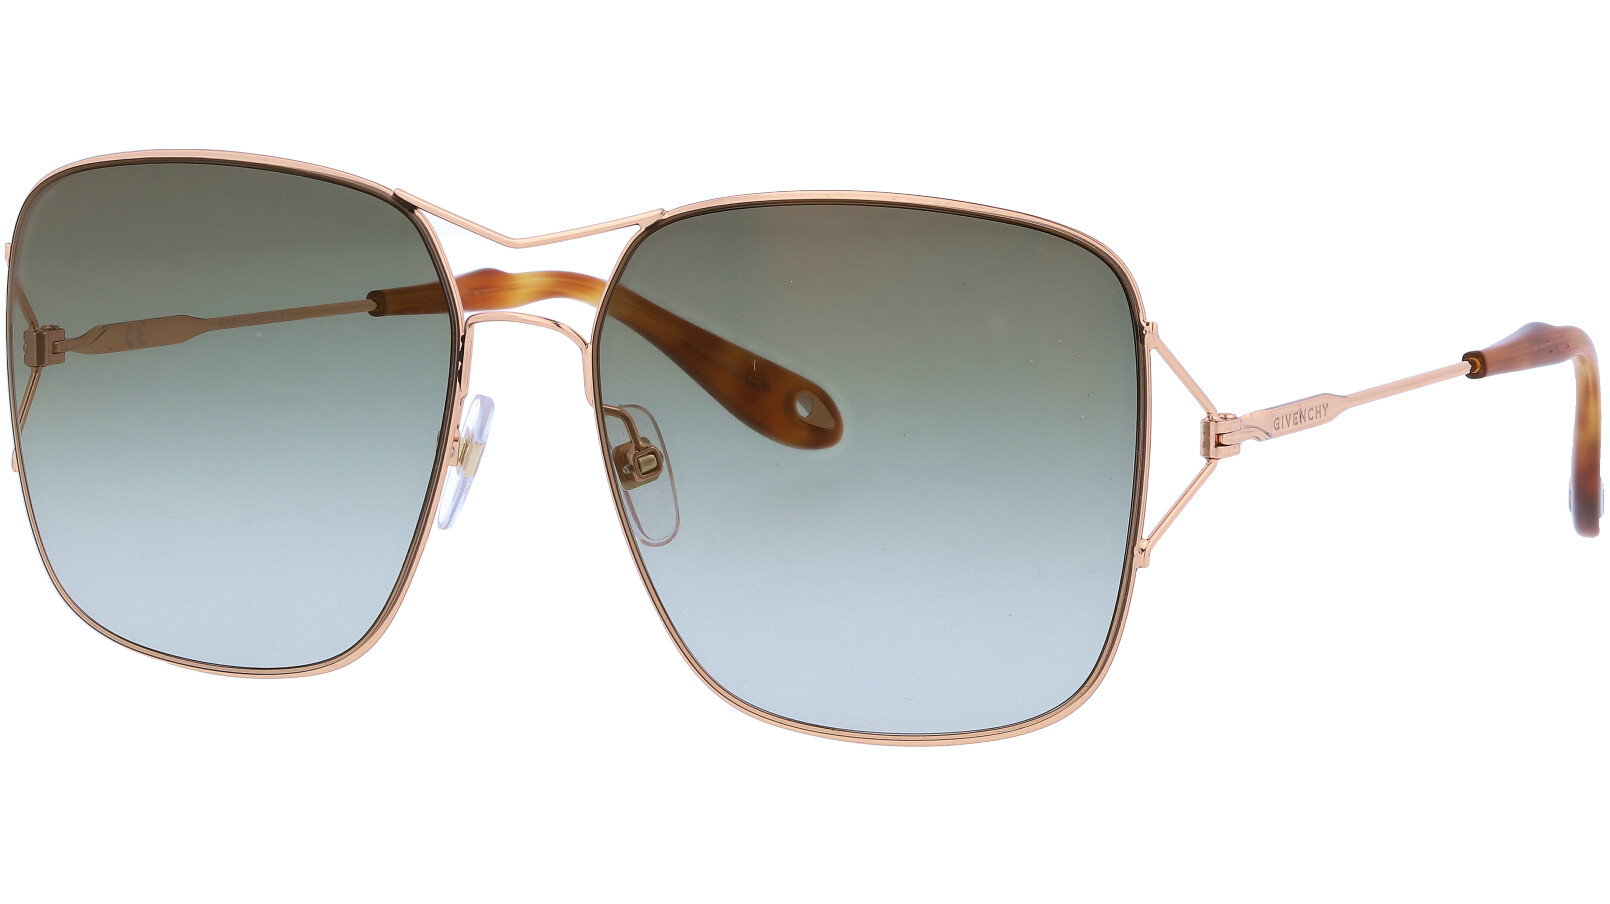 GIVENCHY GV7004S DDBCS 58 GOLD Sunglasses